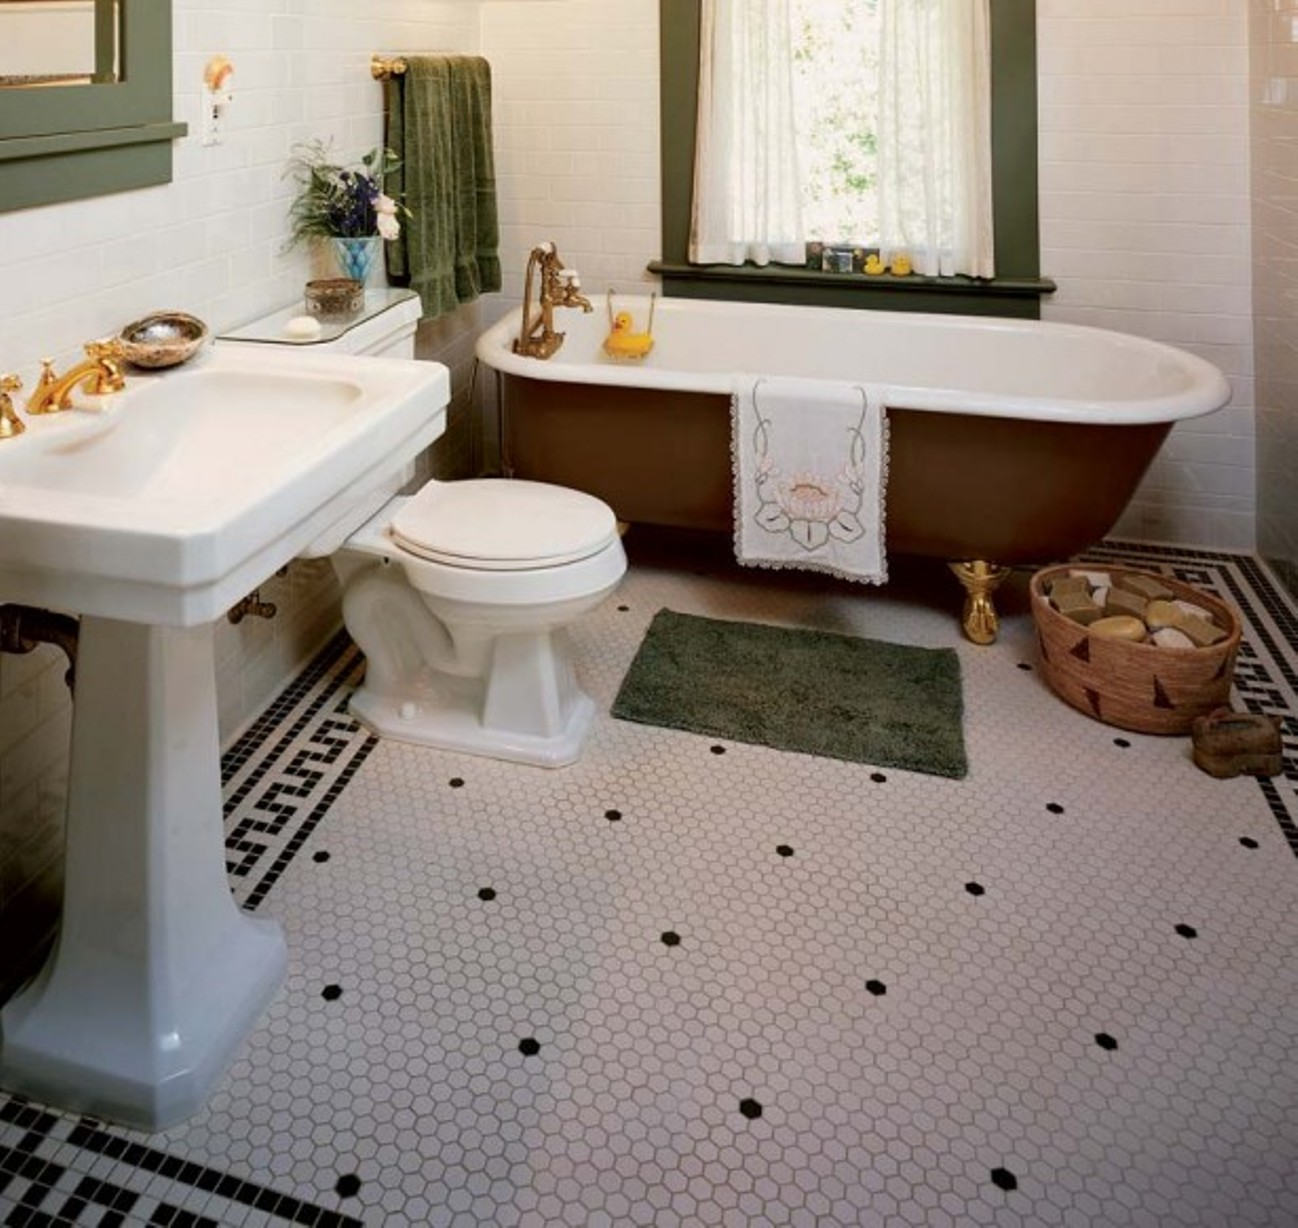 30 ideas on using hex tiles for bathroom floors. Black Bedroom Furniture Sets. Home Design Ideas